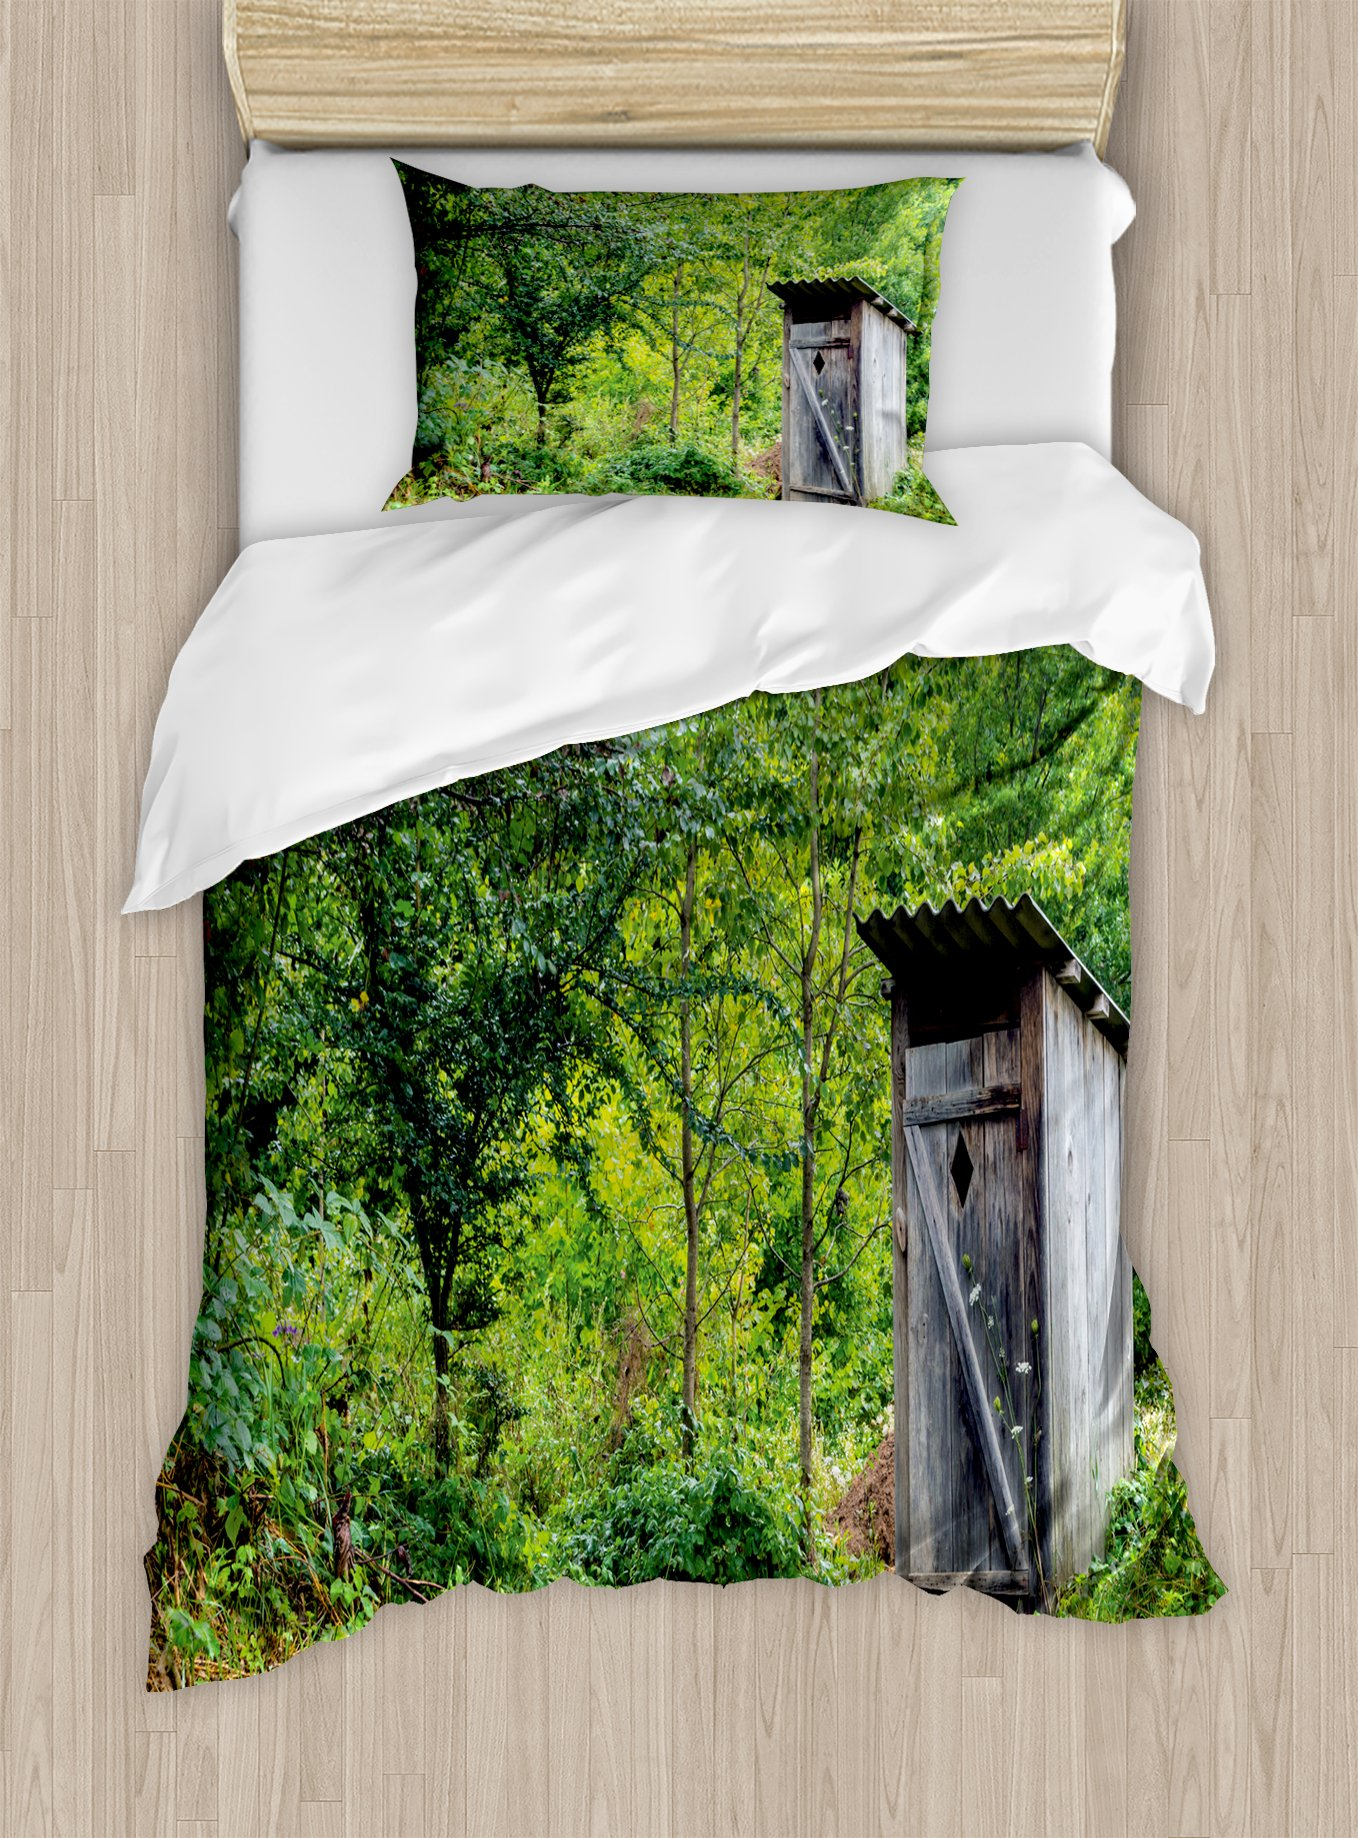 Ambesonne Outhouse Duvet Cover Set Twin Size, Old Ancient Cottage Outhouse in a Spring Mountian Forest Woods Image, Decorative 2 Piece Bedding Set with 1 Pillow Sham, Fern Green and Brown